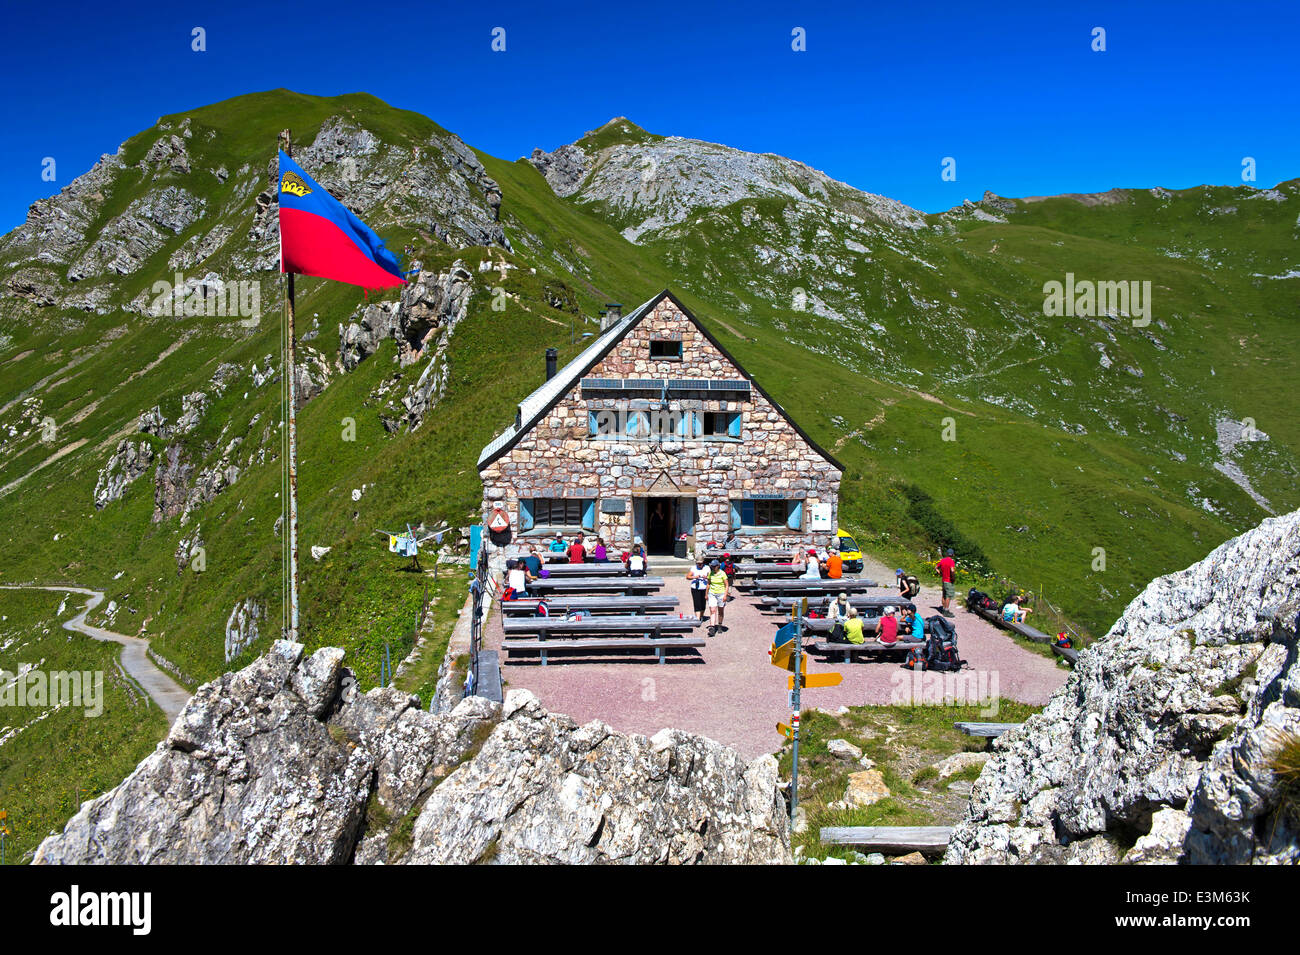 Mountain hut Pfaelzerhuette with the flag of Liechtenstein, Raetikon mountain range, Principality of Liechtenstein - Stock Image